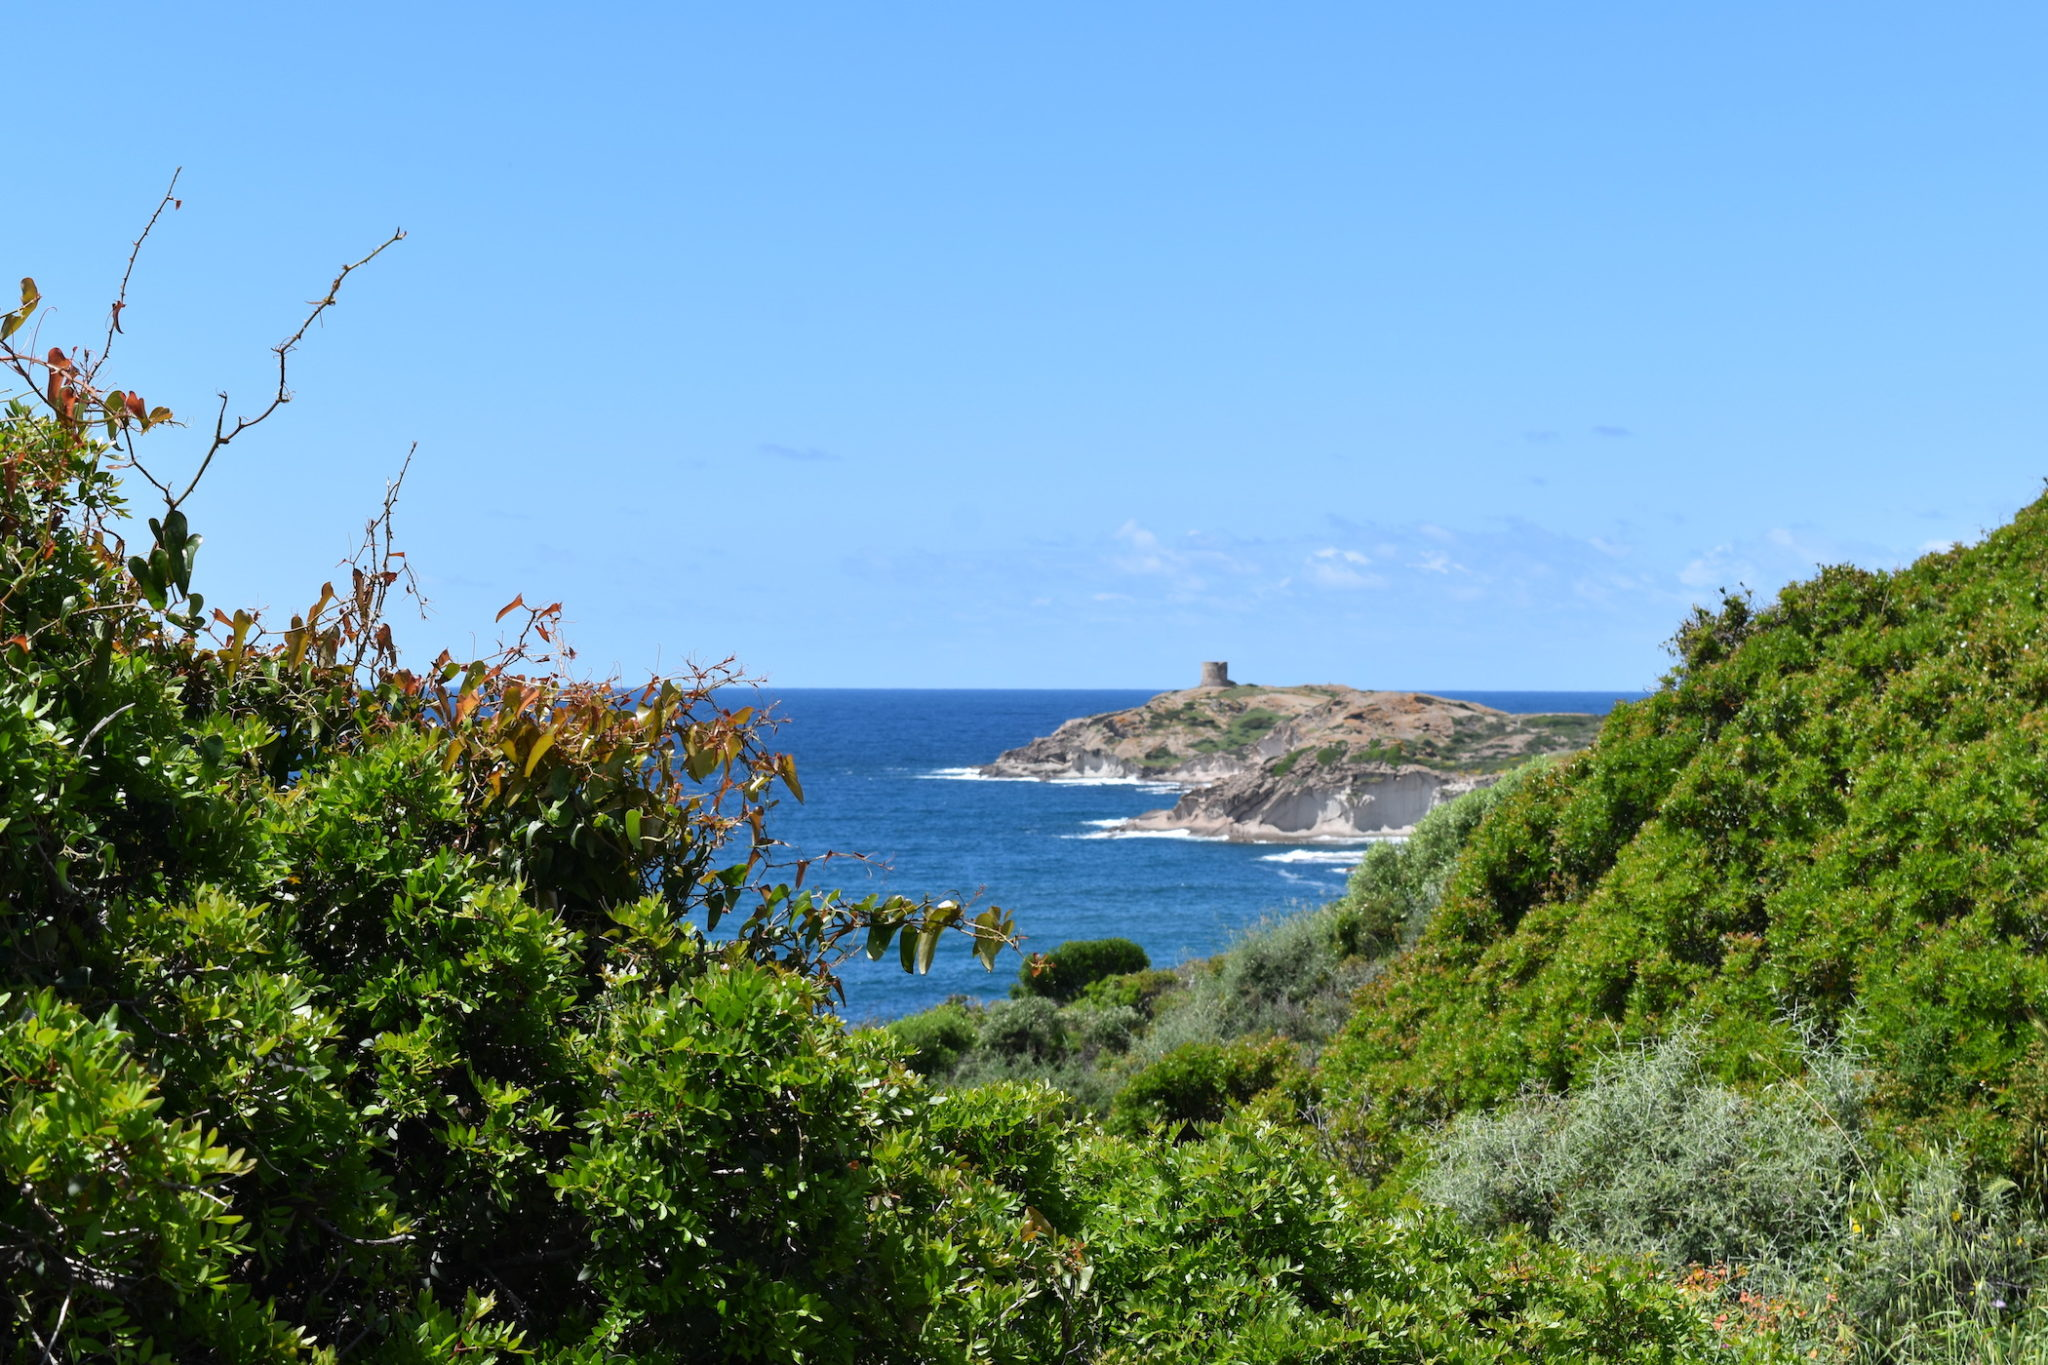 Sardinia - A Lovely Planet - Hayley Lewis